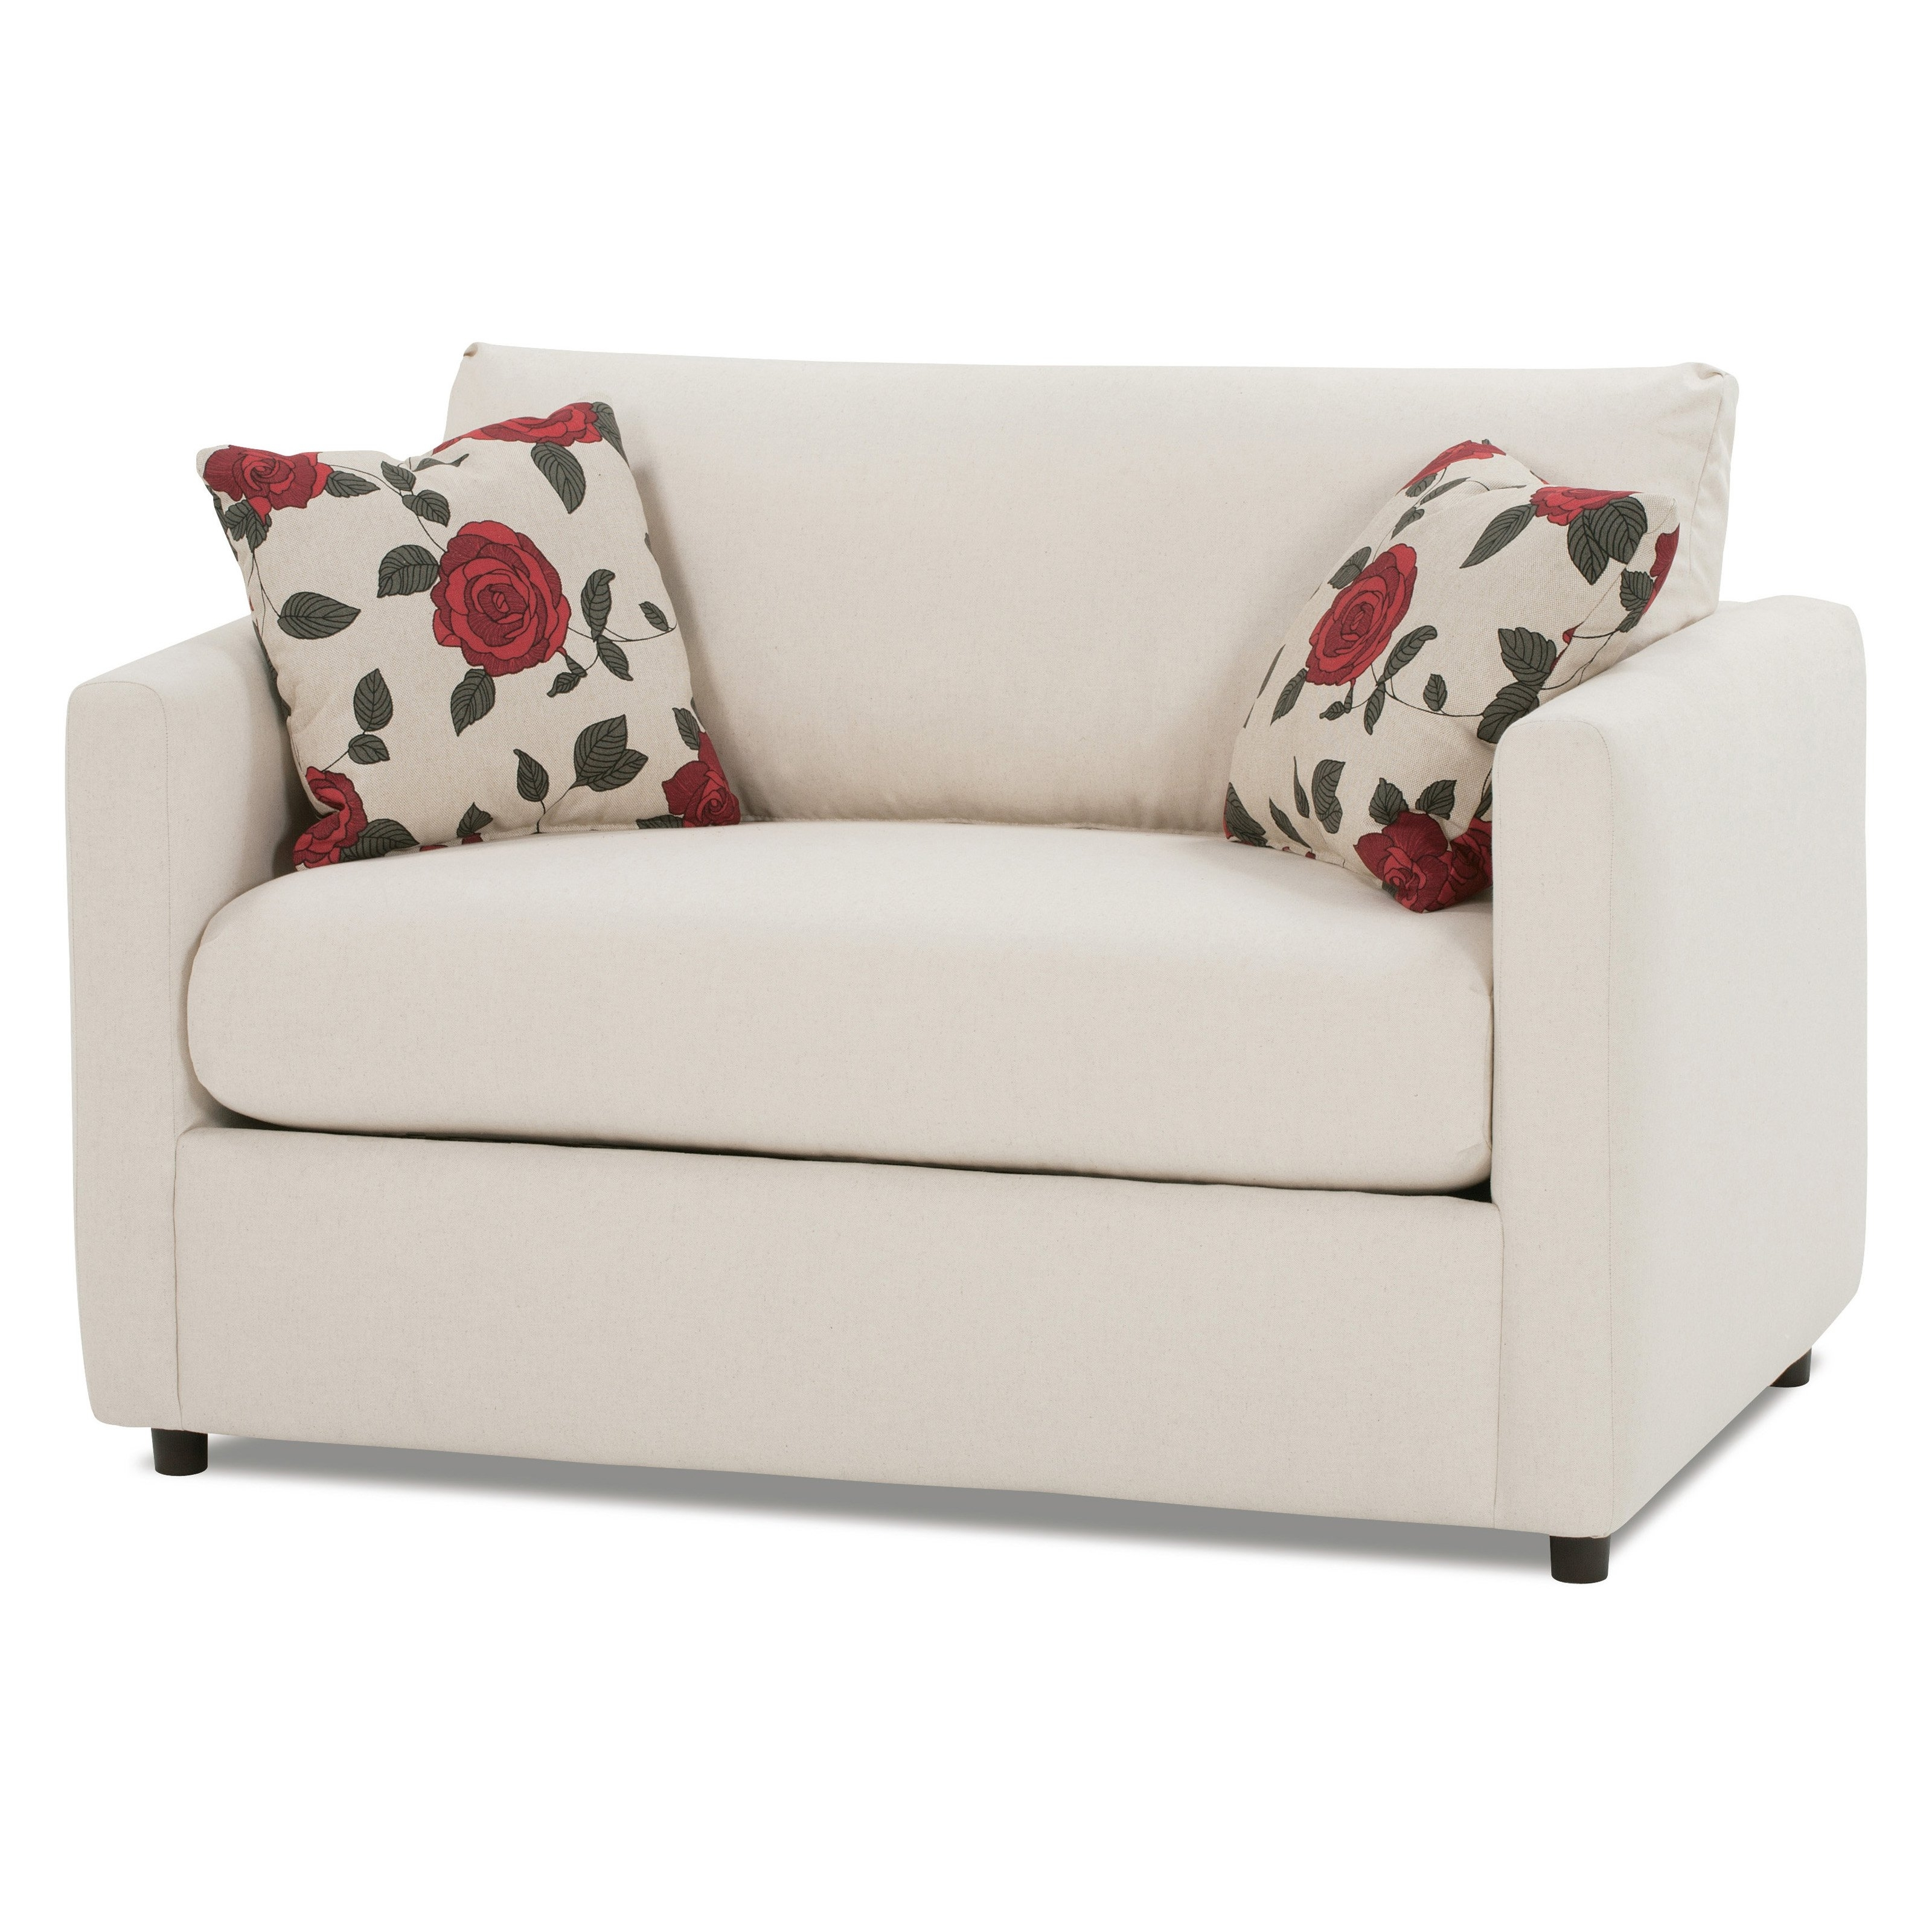 White Color Leather Twin Size Sleeper Sofa With Storage And Pillow Regarding Widely Used Twin Sofa Chairs (View 3 of 20)